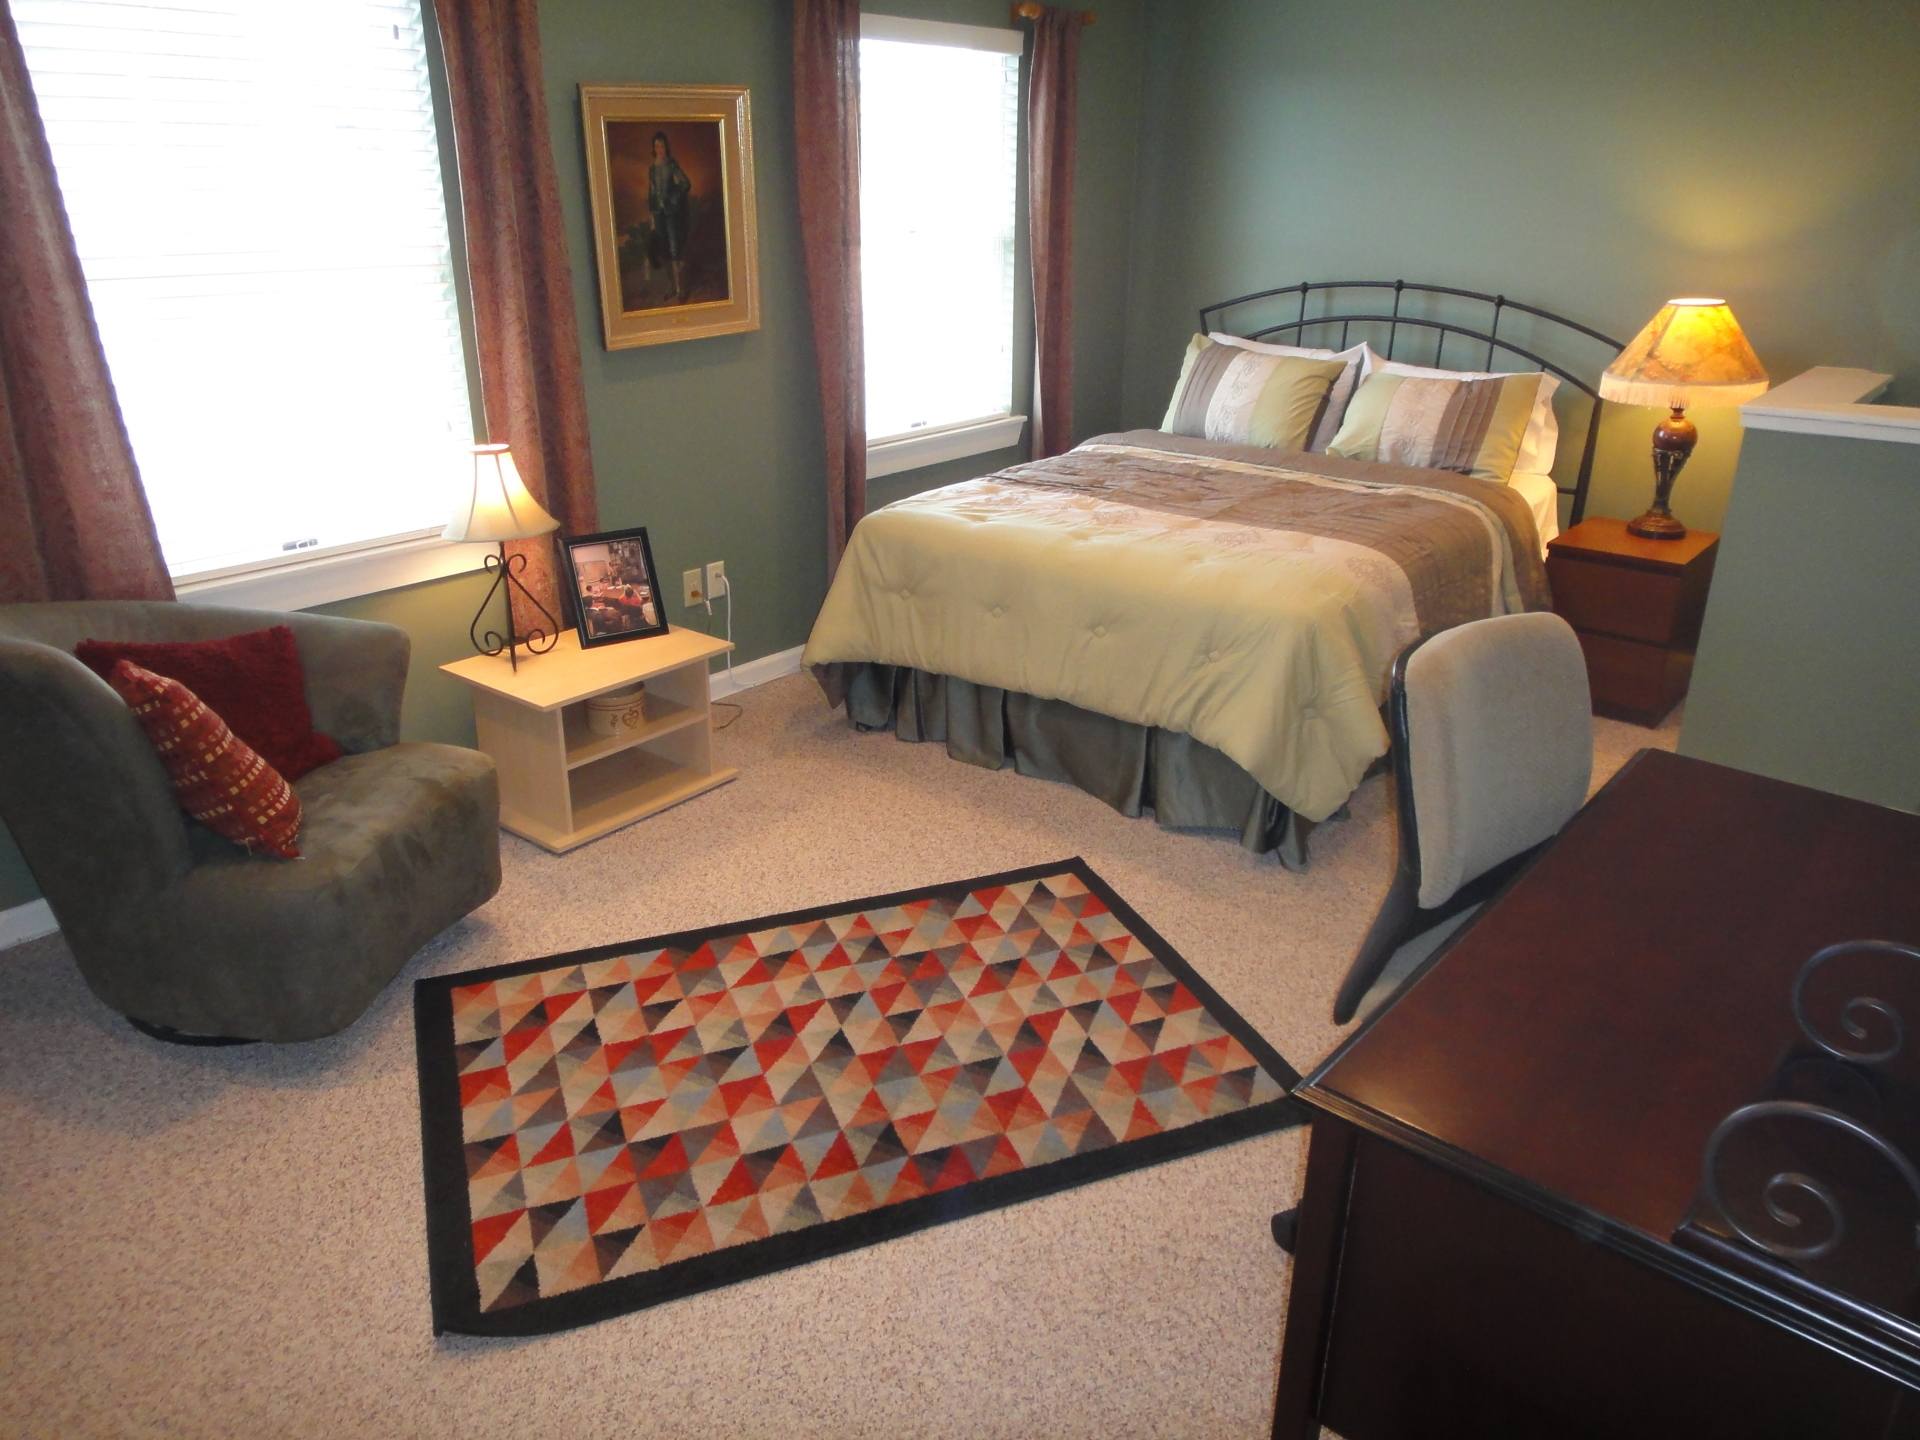 Furnished apartment in Hershey PA